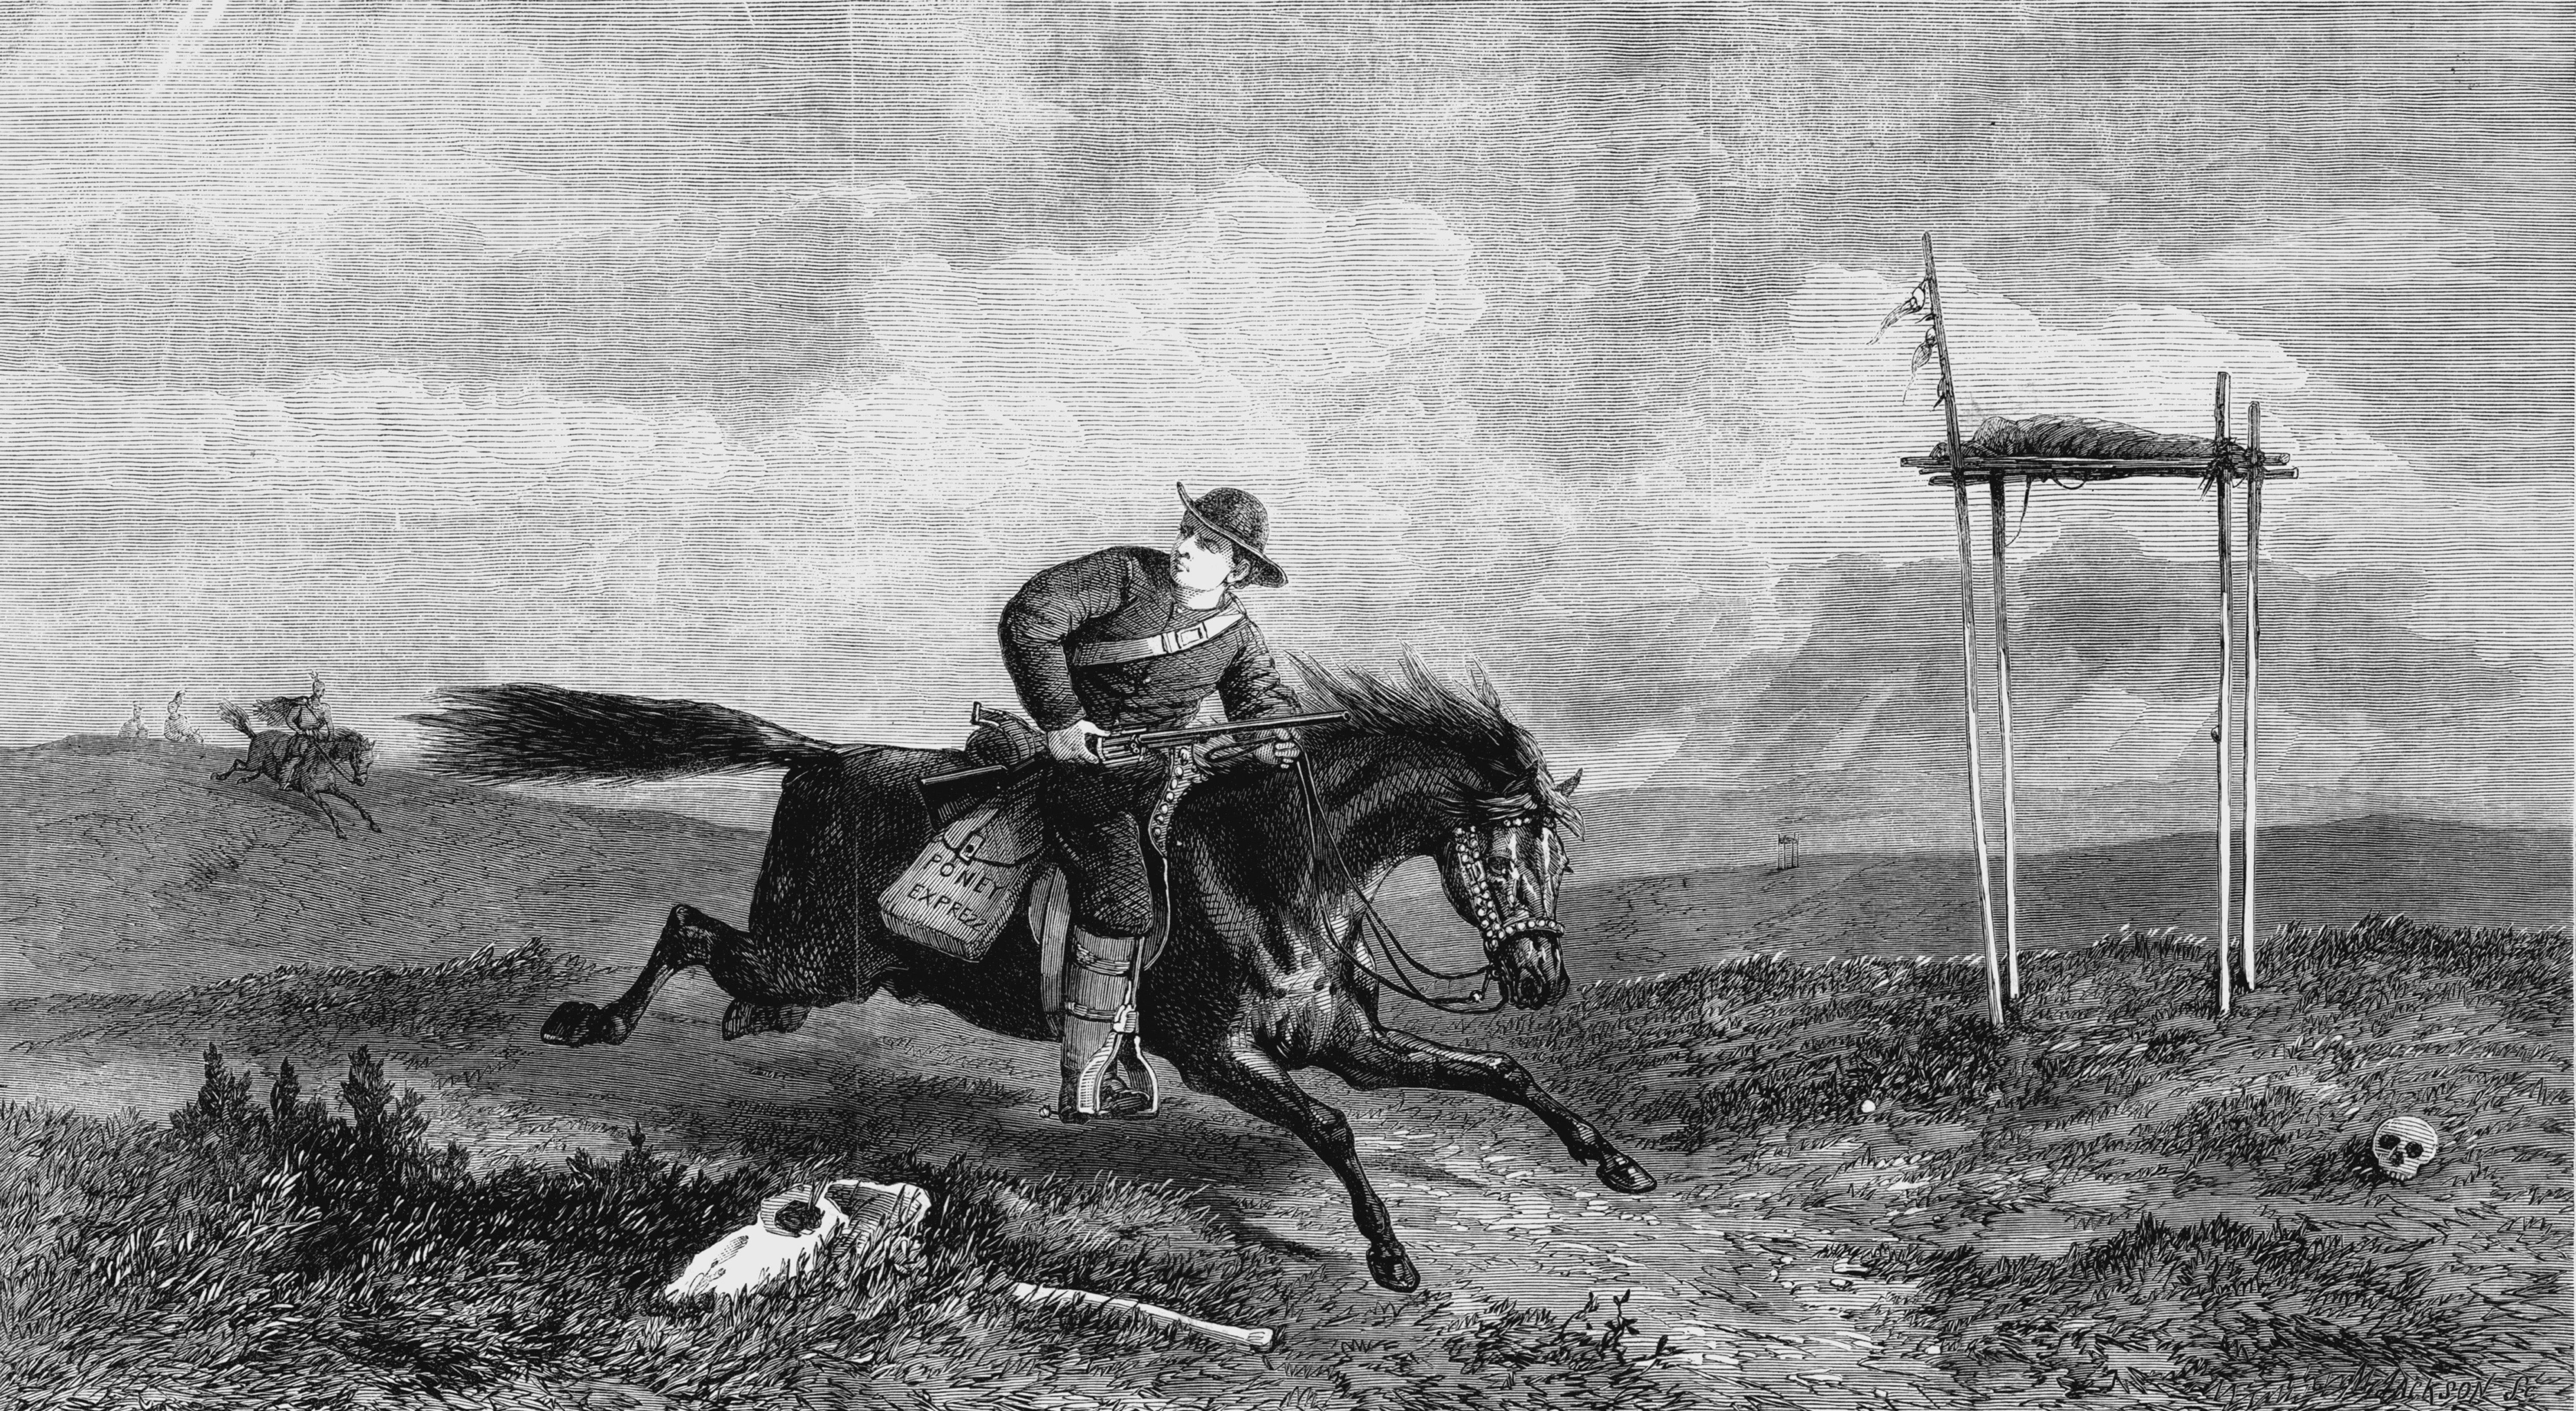 Pony Express rider crossing hostile country between St Joseph, Missouri, and San Francisco, pursued by native Americans. Engraving from The Illustrated London News, October 1861.